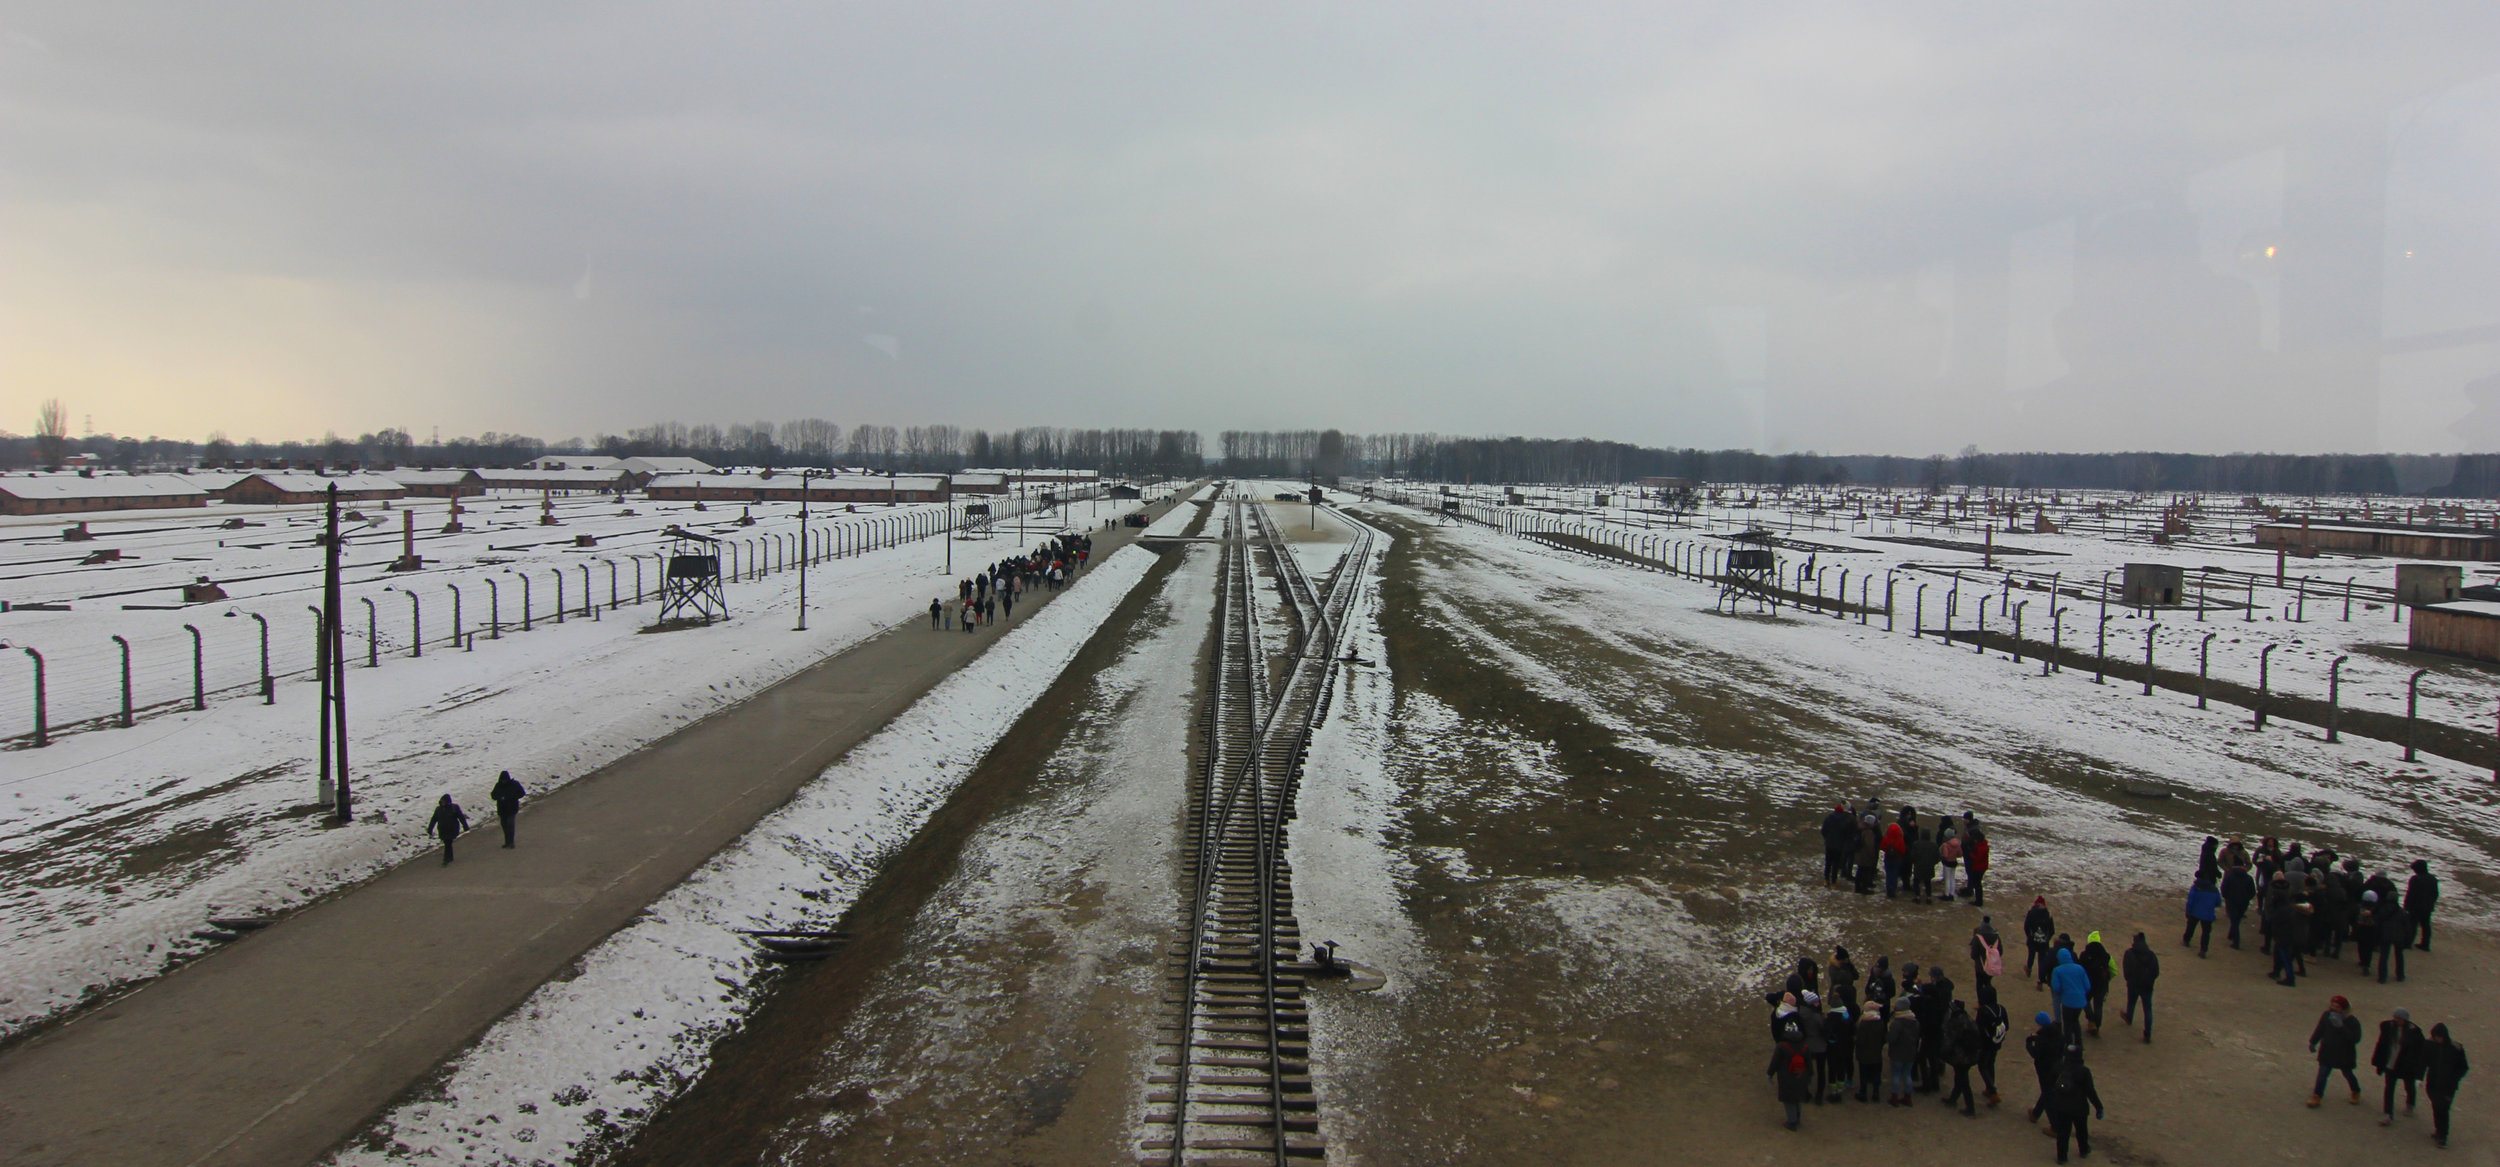 View of Auschwitz-Birkenau from the guard tower.